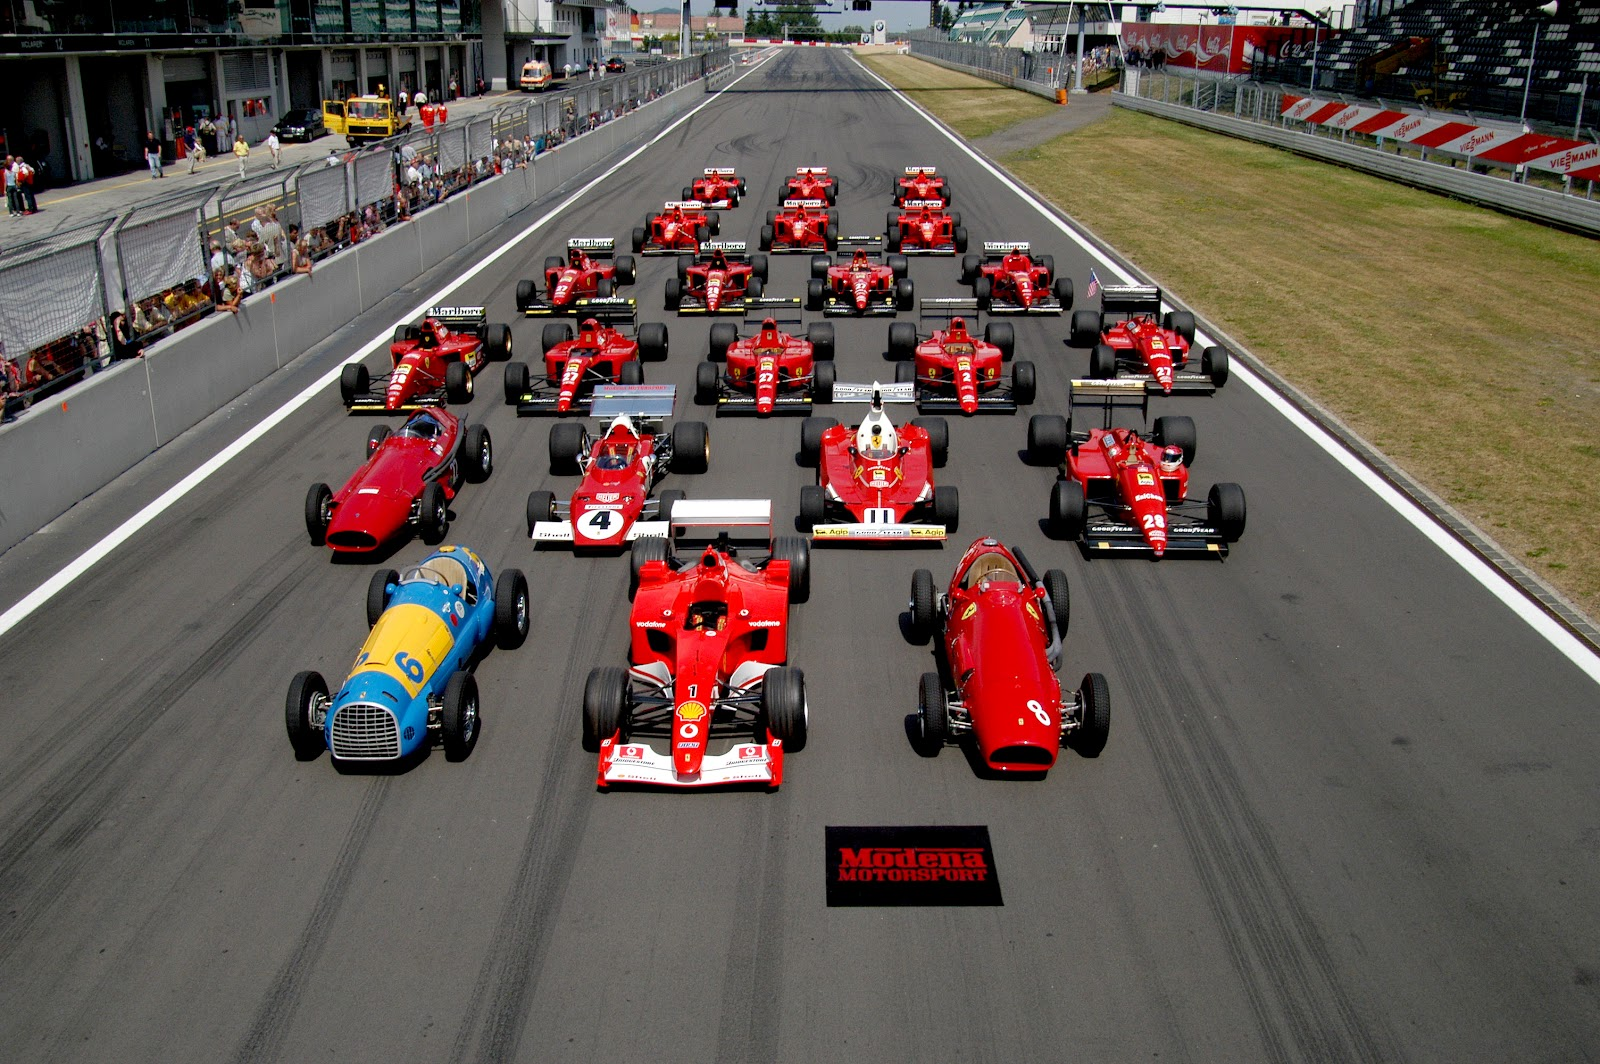 F1 Formula 1 GPTodaycom  Hottest News  All the F1